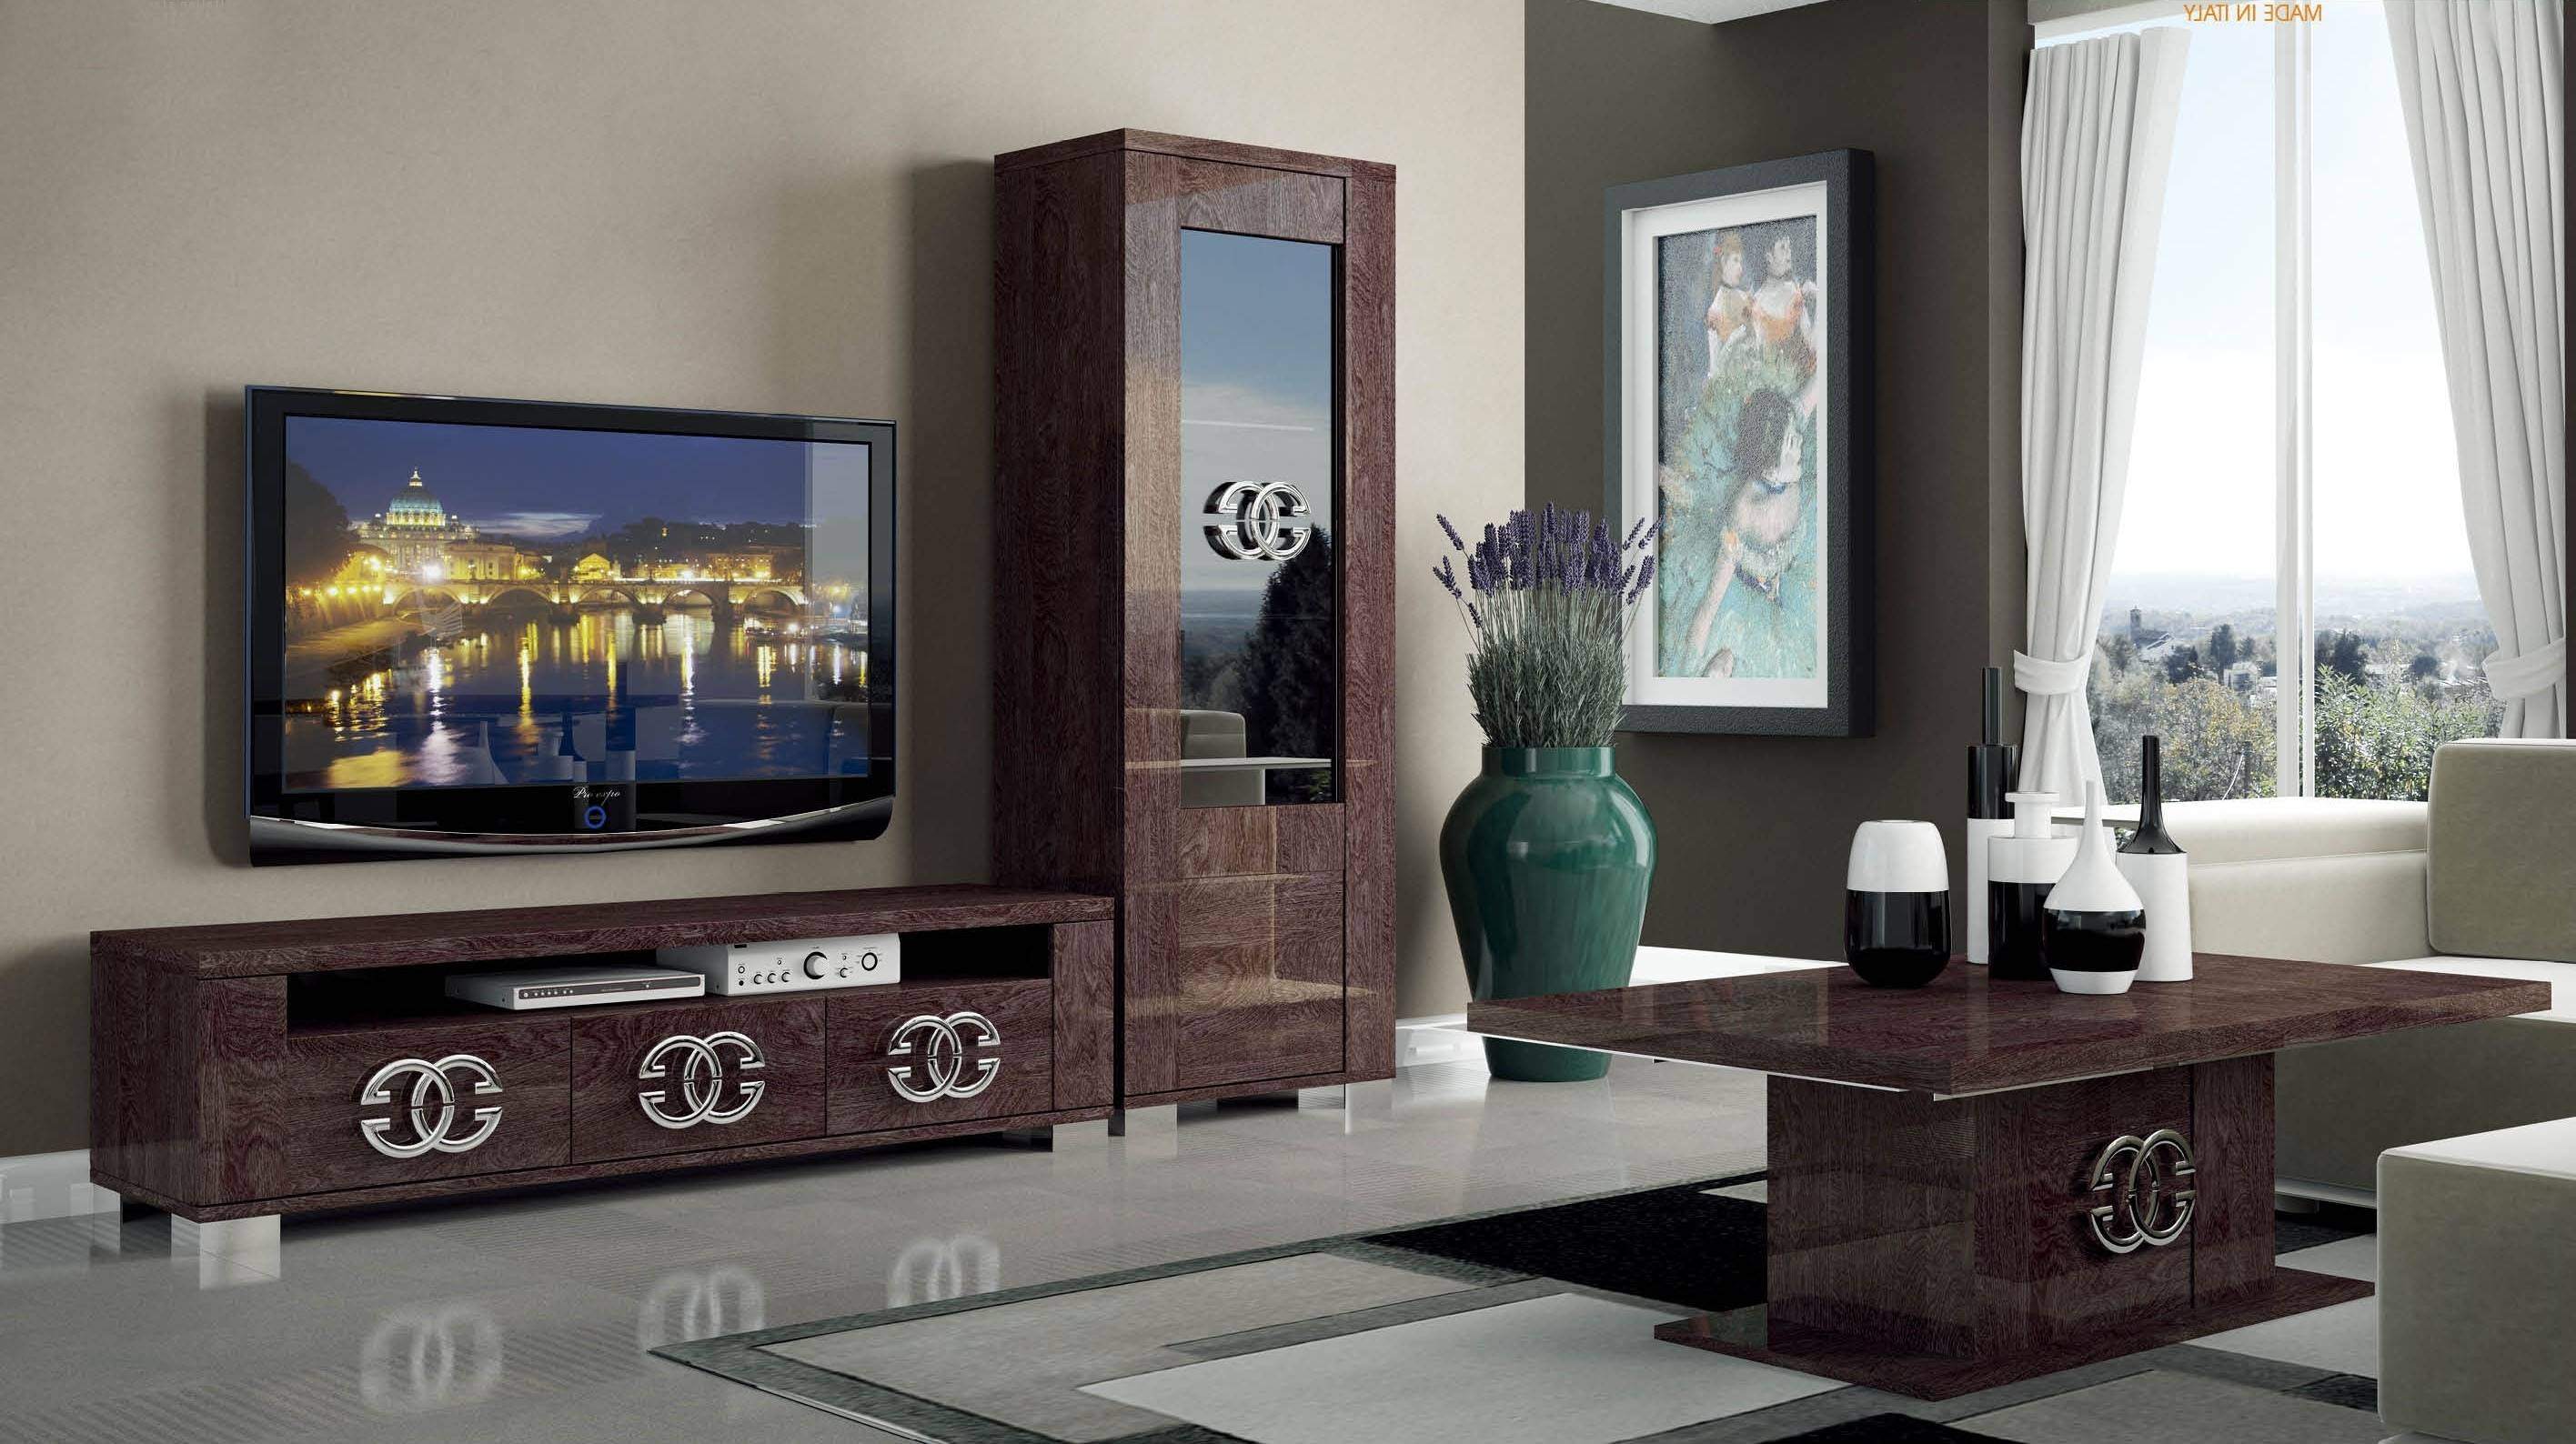 Excellent Luxury Tv Stands 103 Luxury Tv Stands Uk Decoration In Luxury Tv Stands (View 5 of 15)